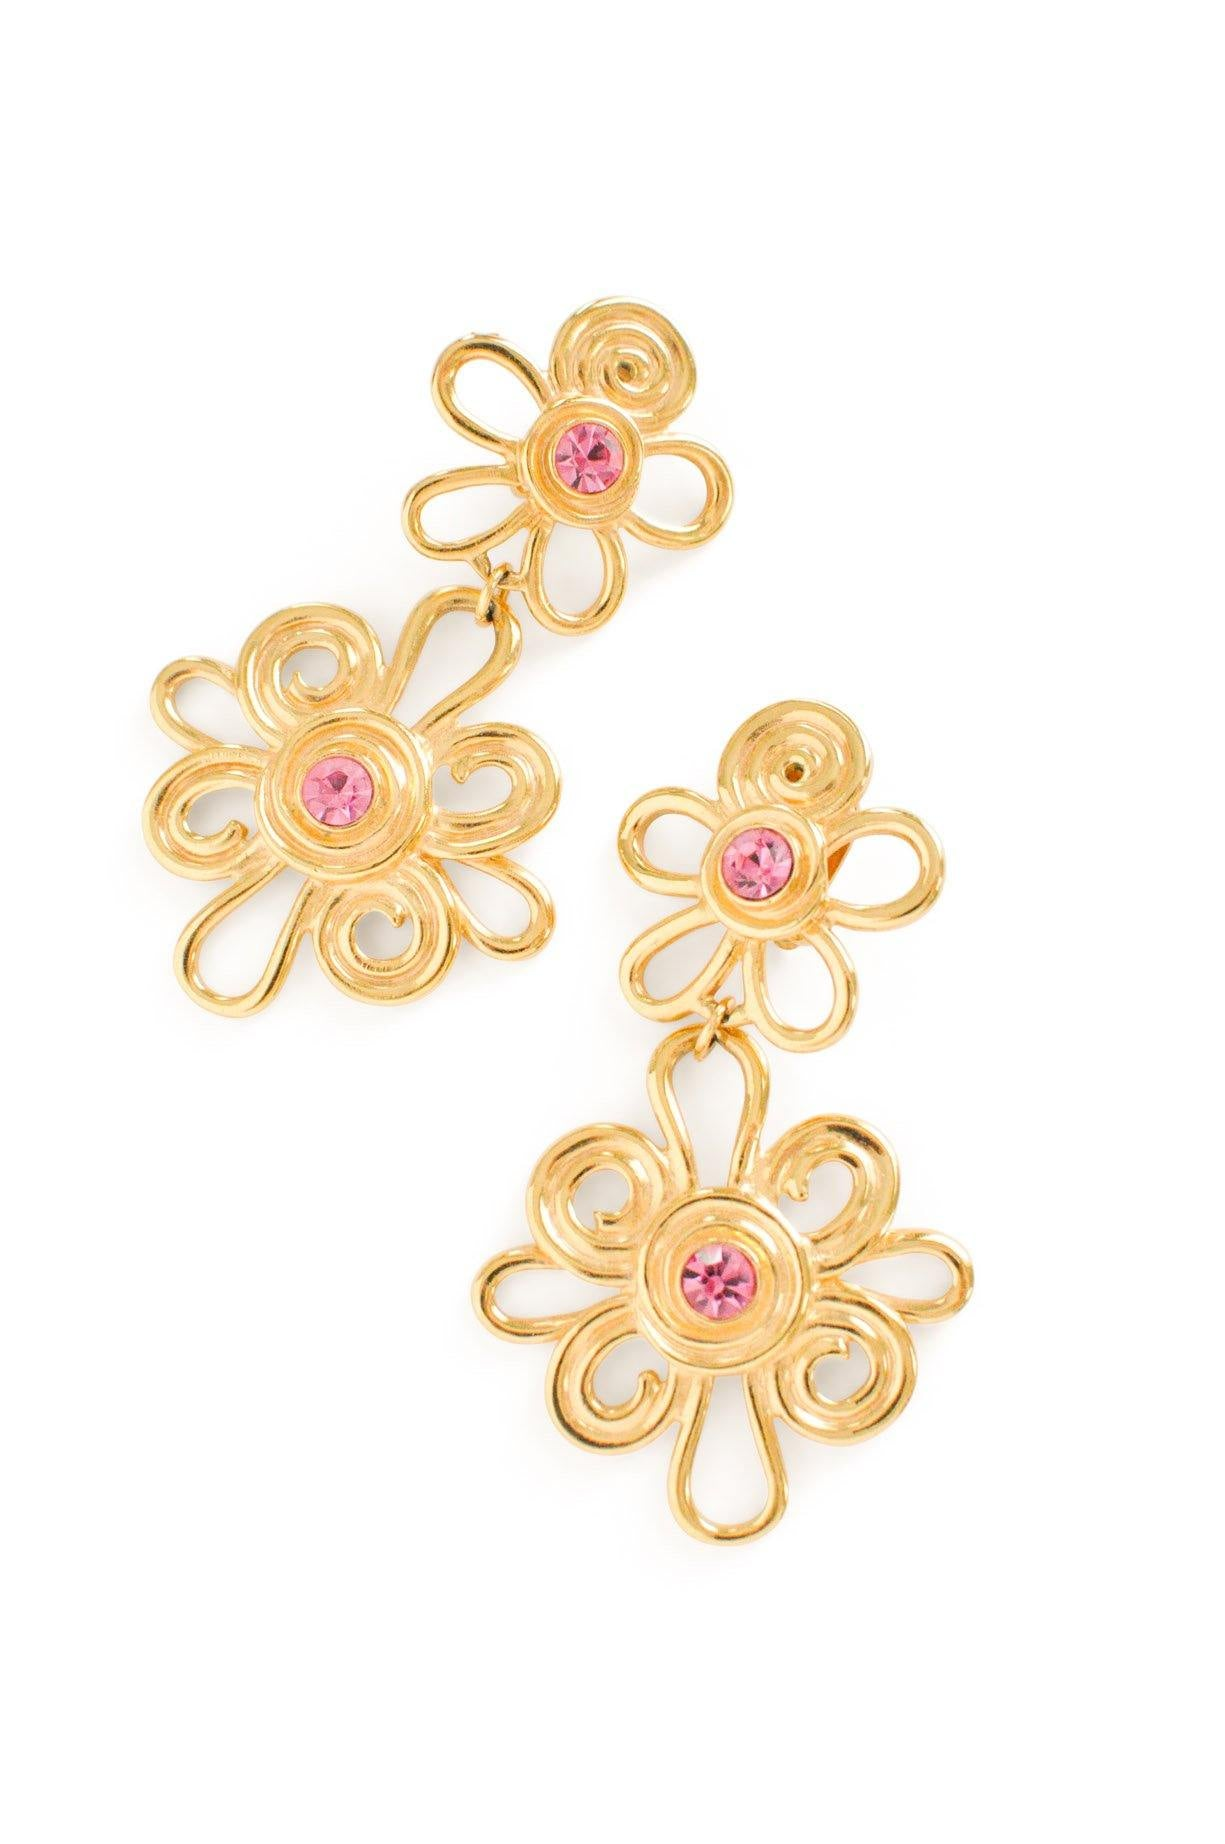 Swirl Floral Clip-on Earrings